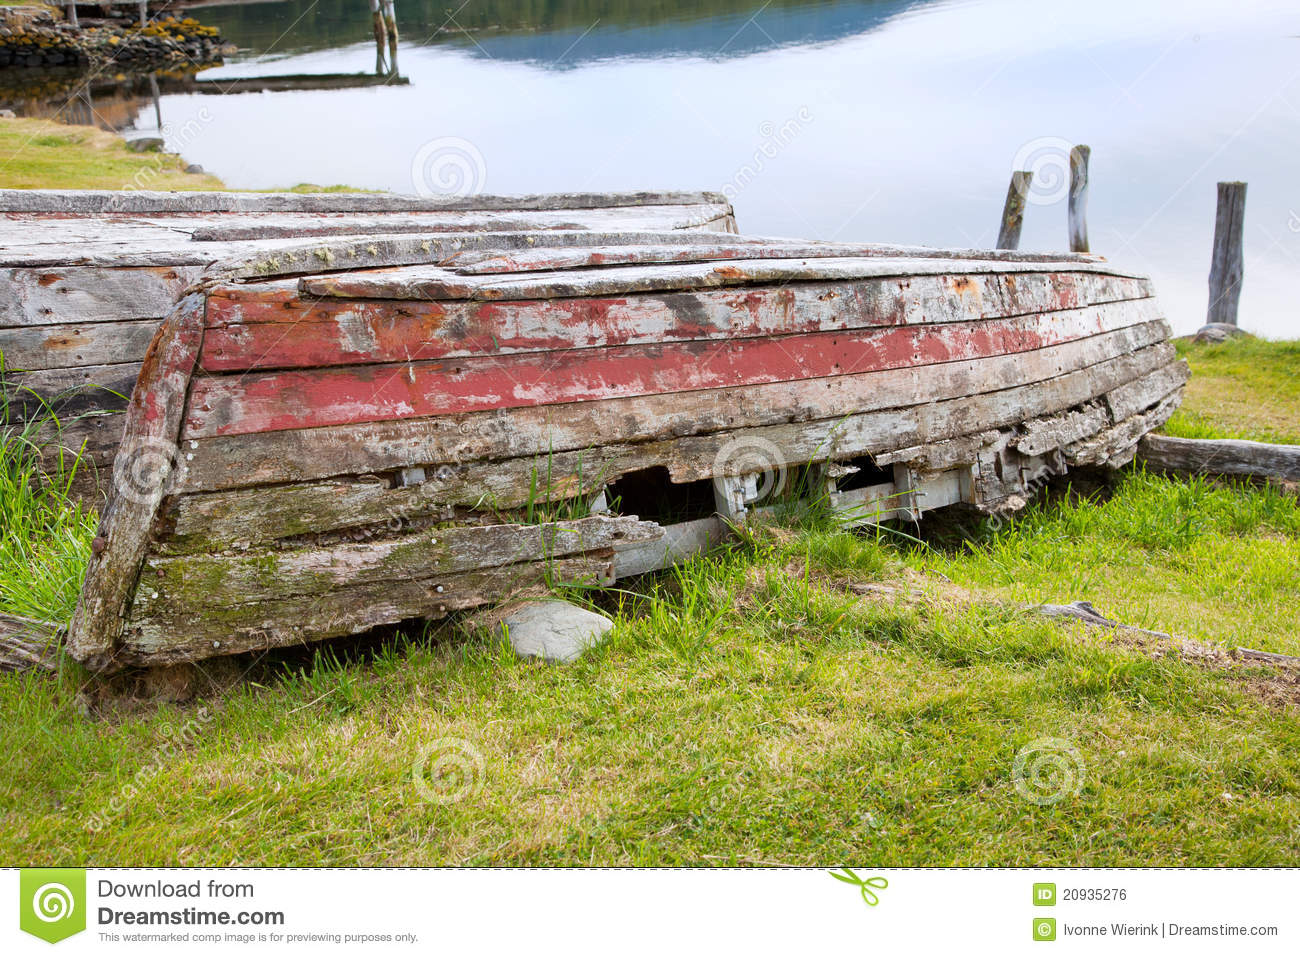 Rotten Wooden Row Boat Royalty Free Stock Image - Image: 20935276